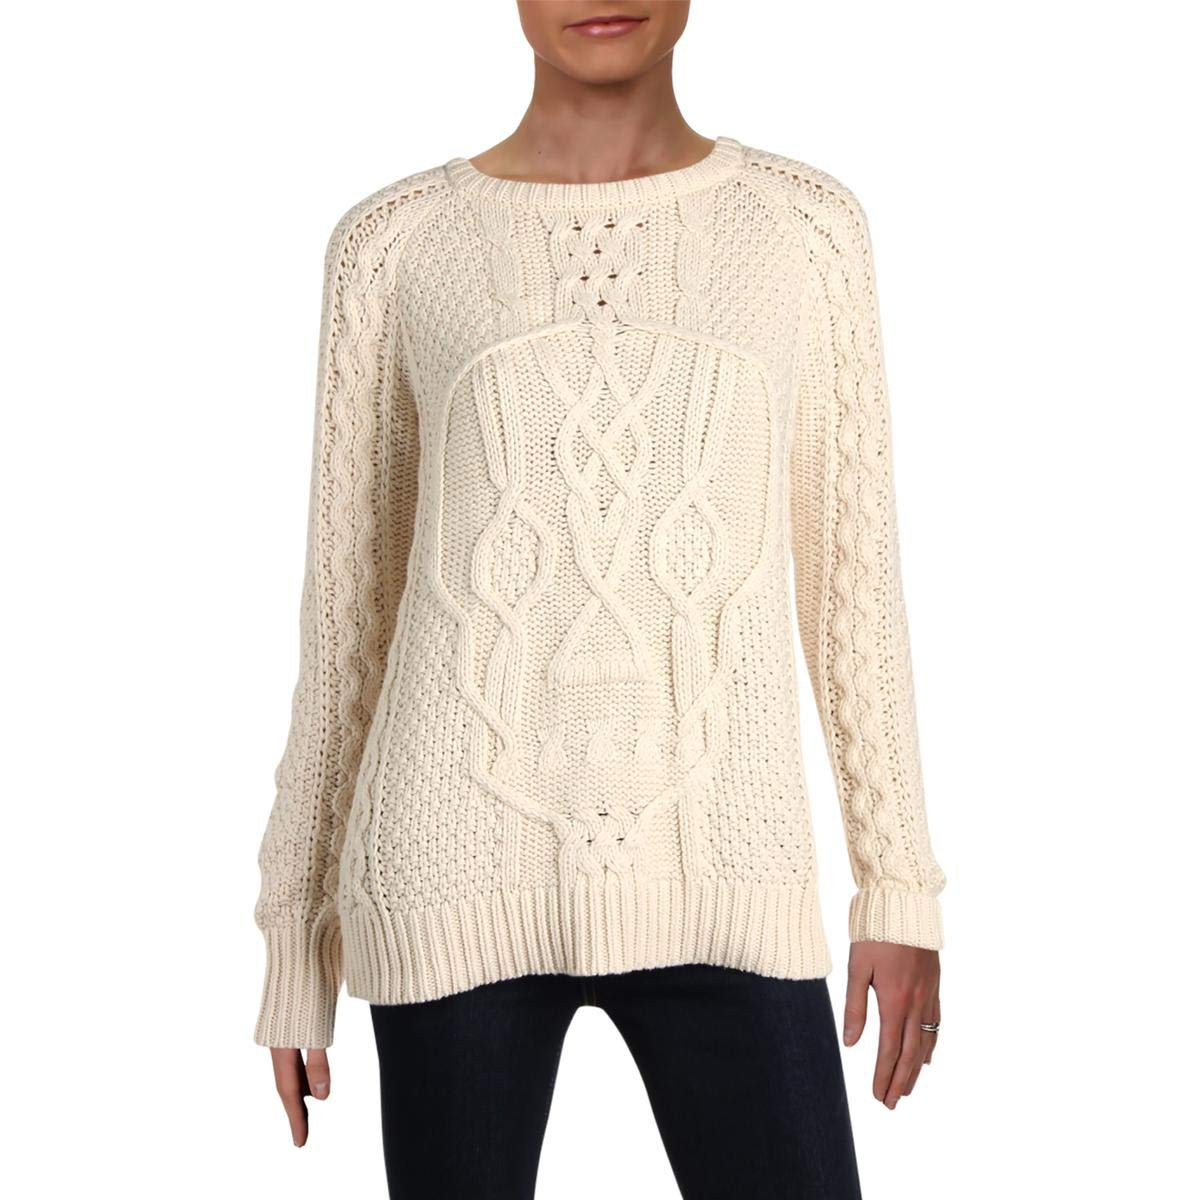 WW Womens Skull Cable Knit Crew Crewneck Sweater